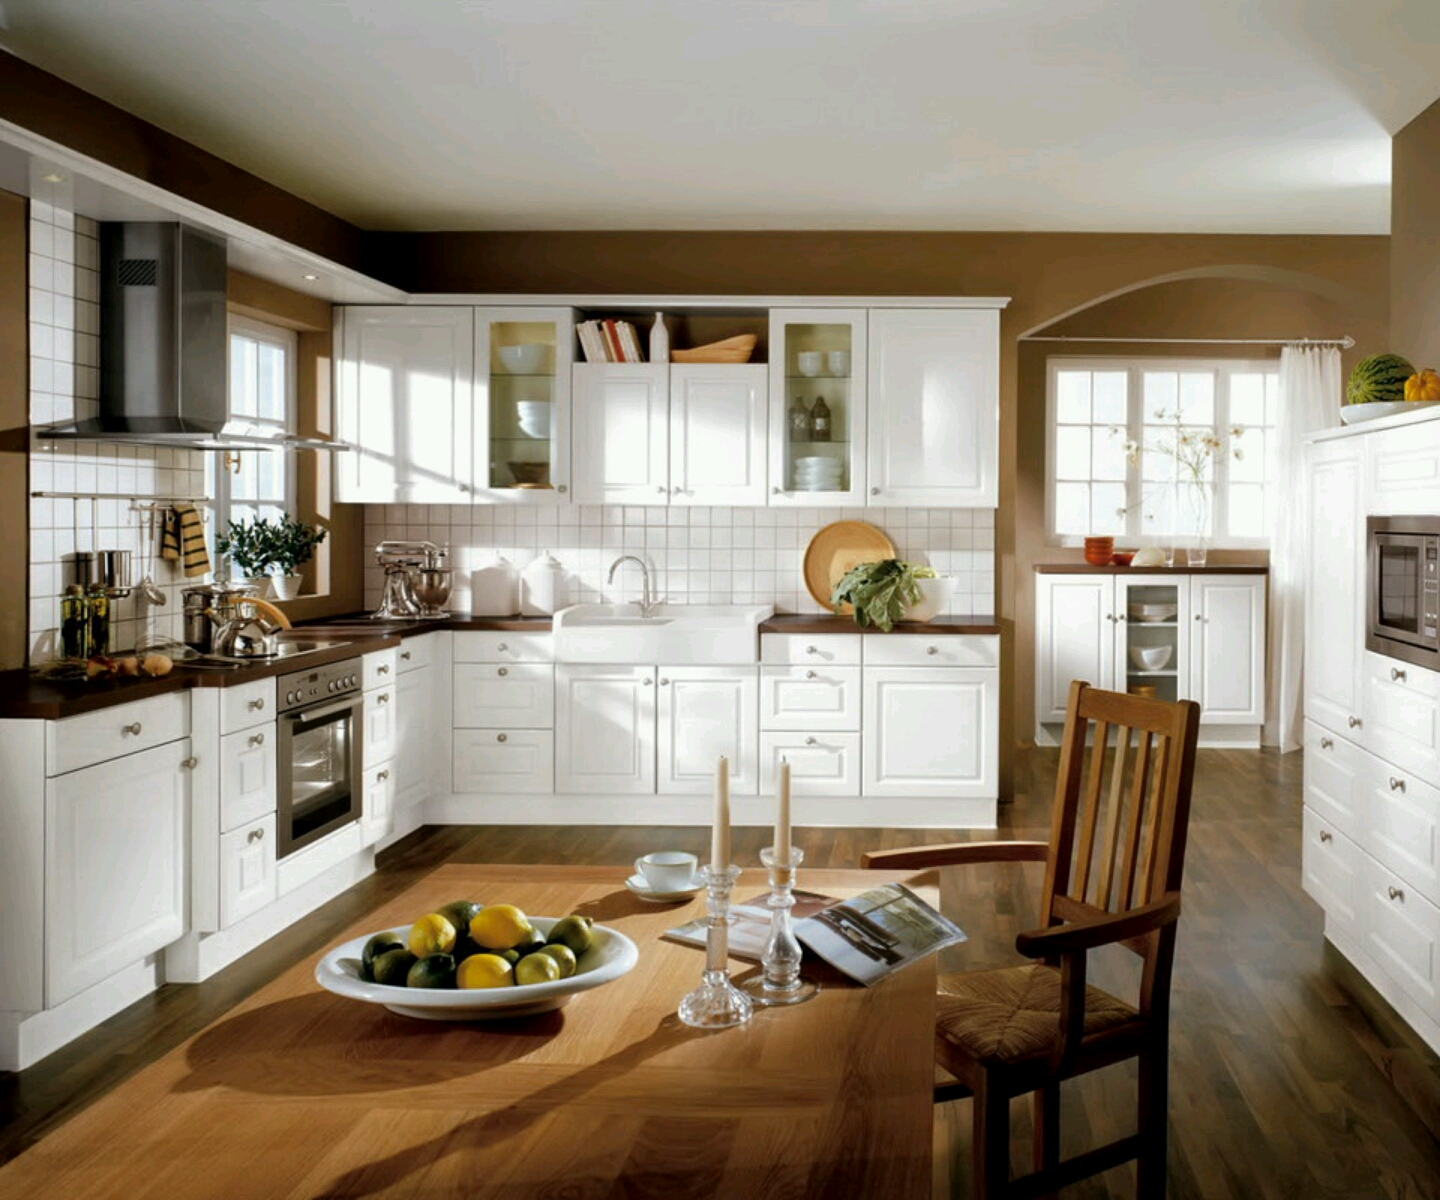 20 modern kitchen design ideas for 2012 pictures long On kitchen furniture ideas